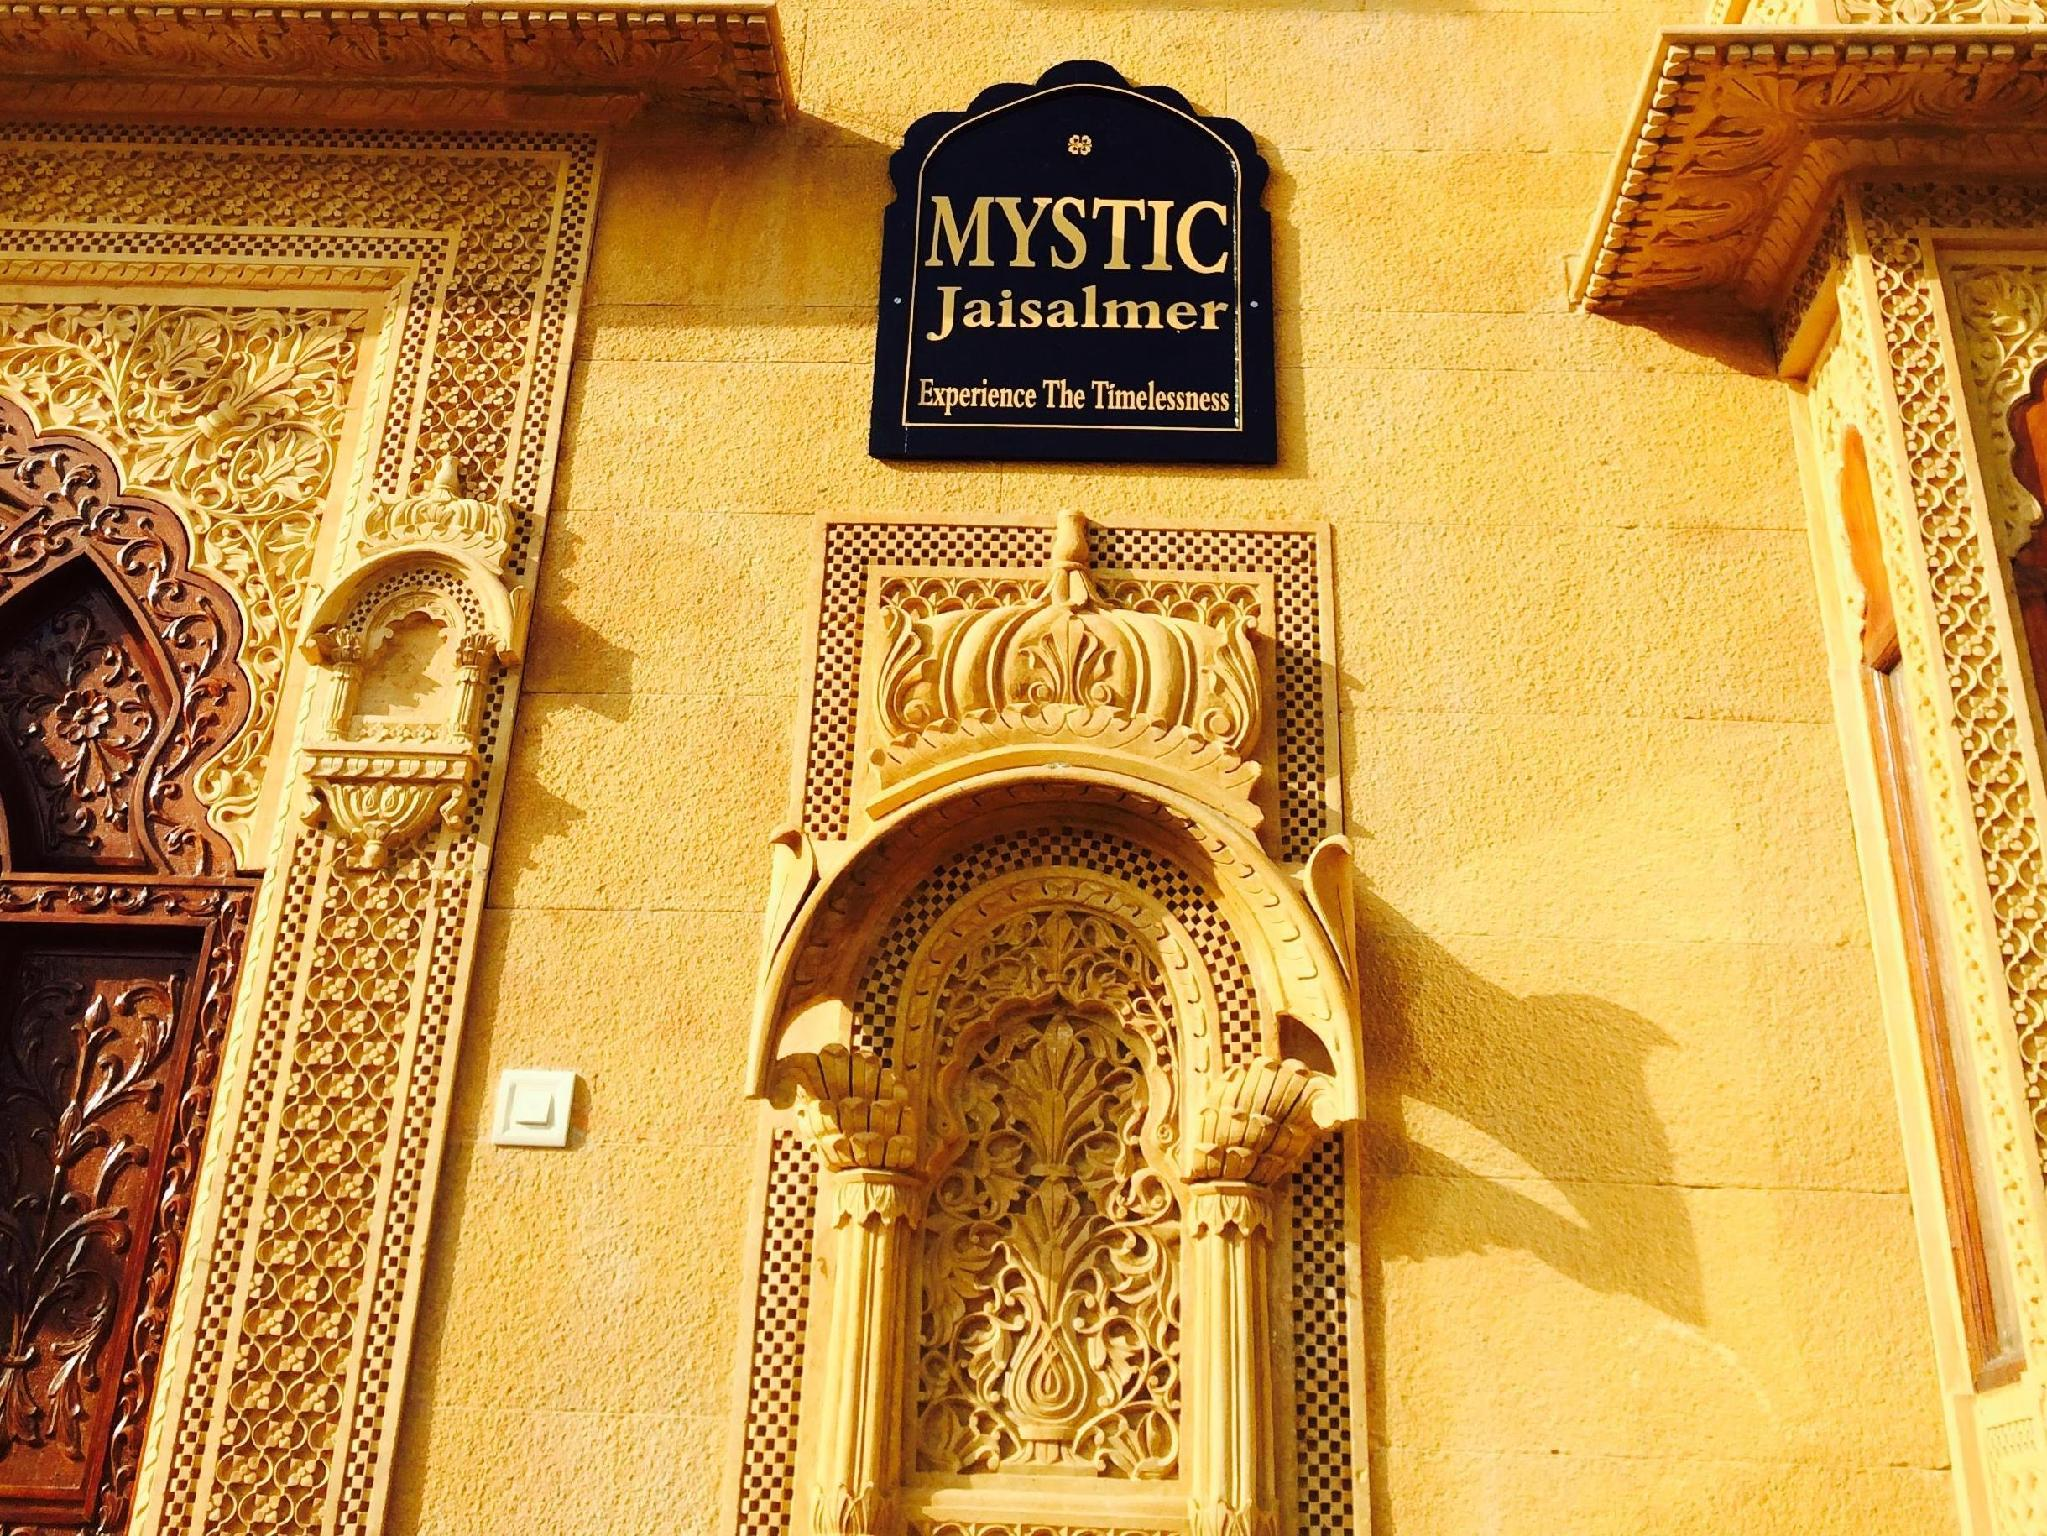 Mystic Jaisalmer Hotel - Hotel and accommodation in India in Jaisalmer